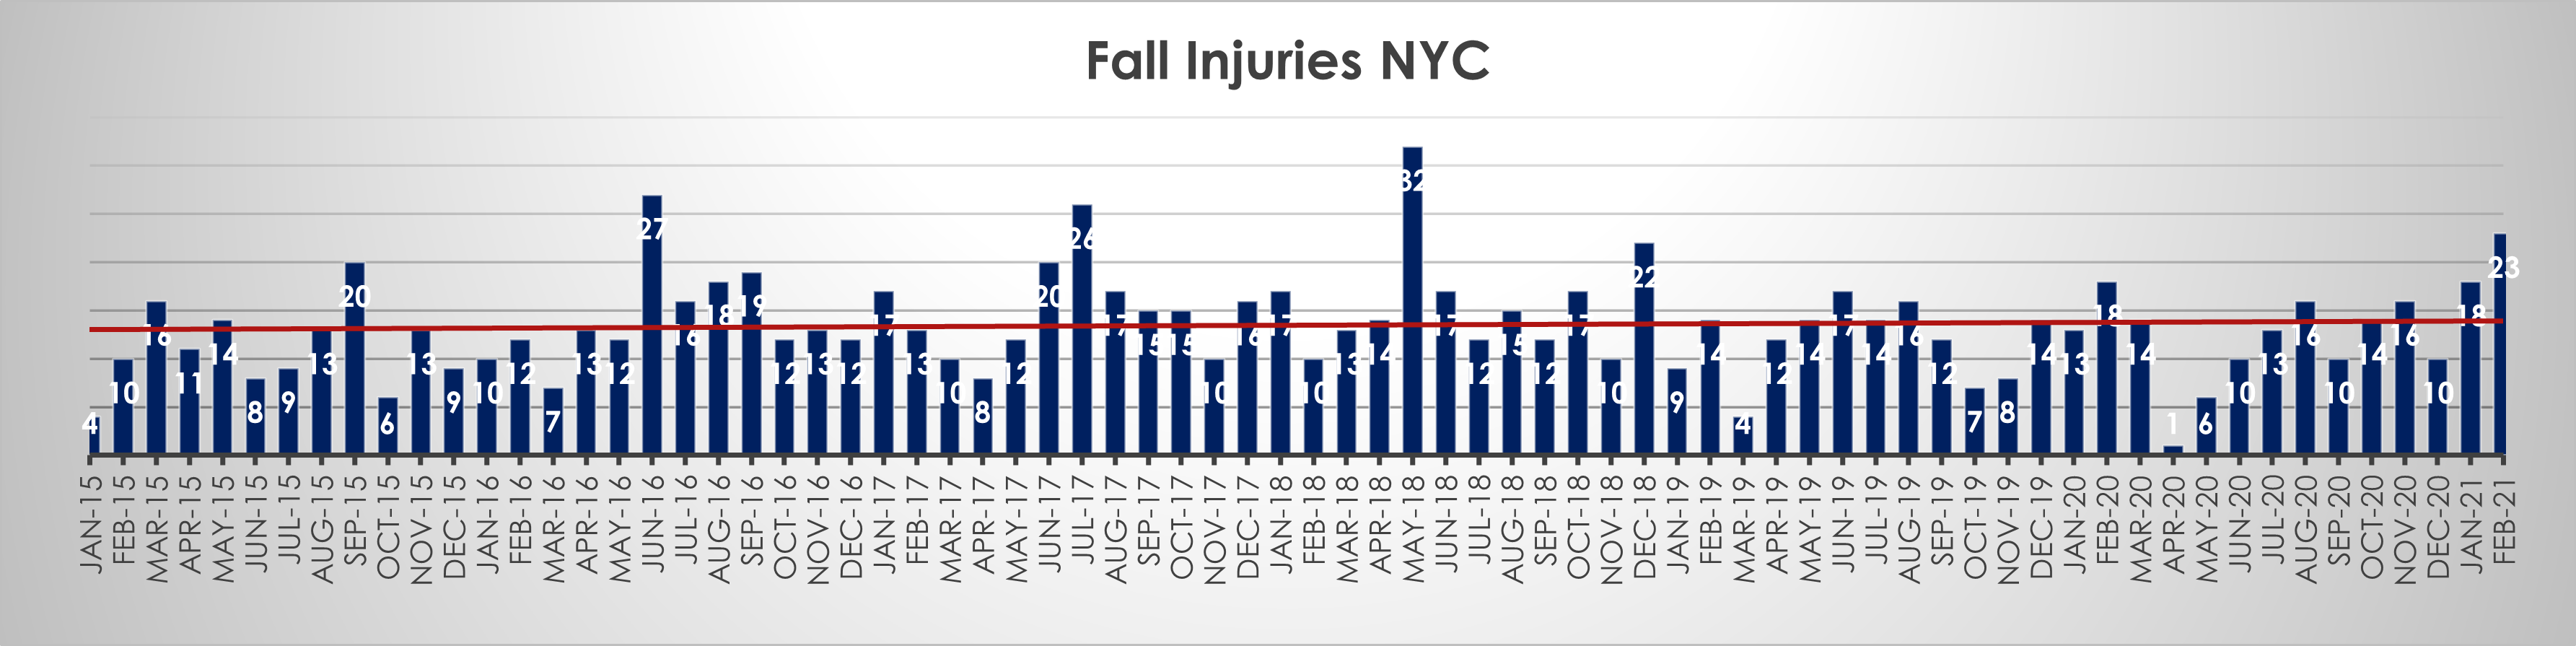 NYC-Fall-accident-injuries-February-21